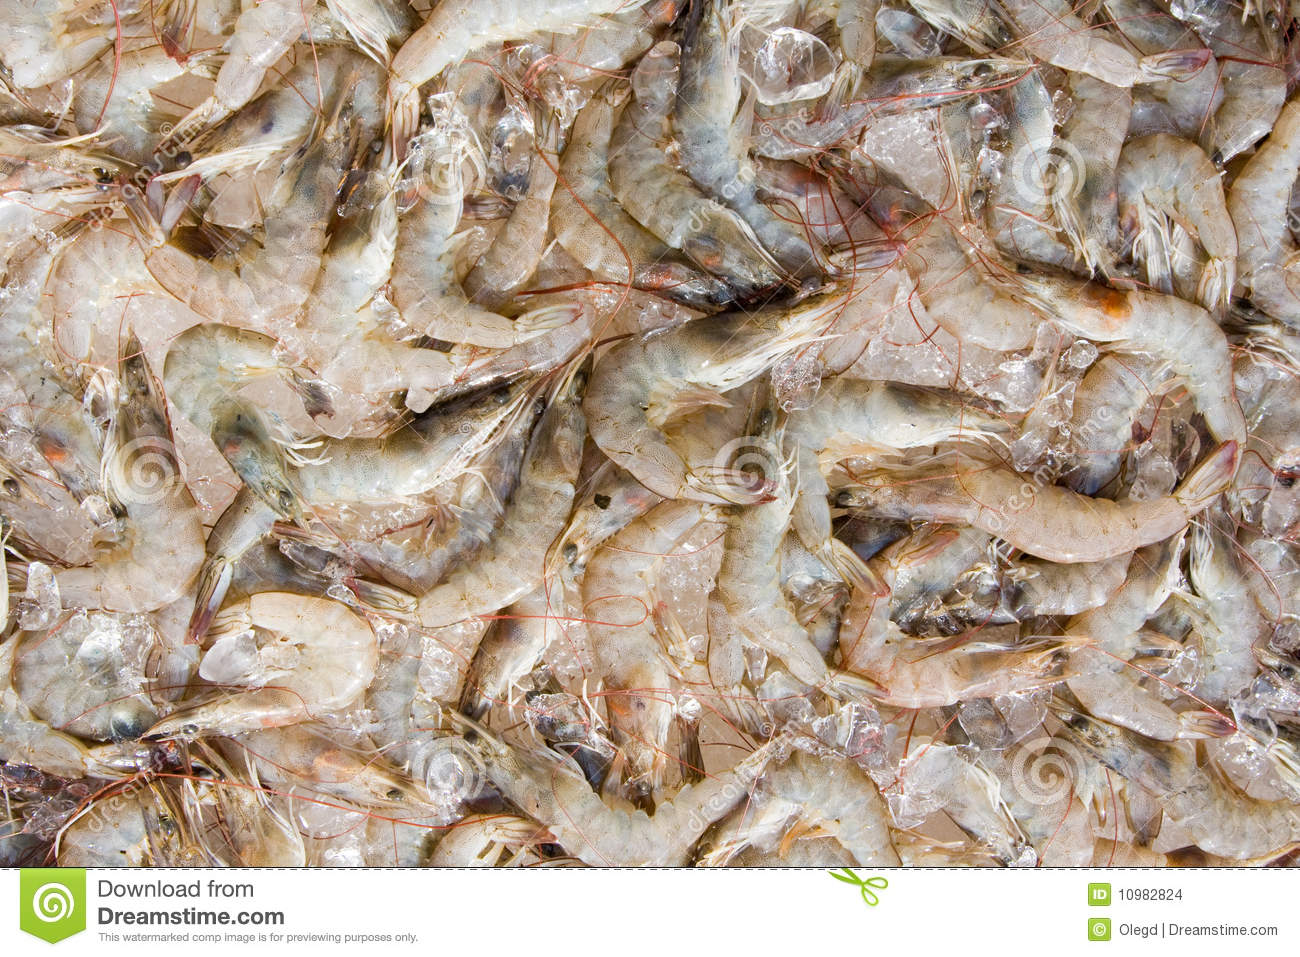 Shrimp Stock Images - Image: 10982824